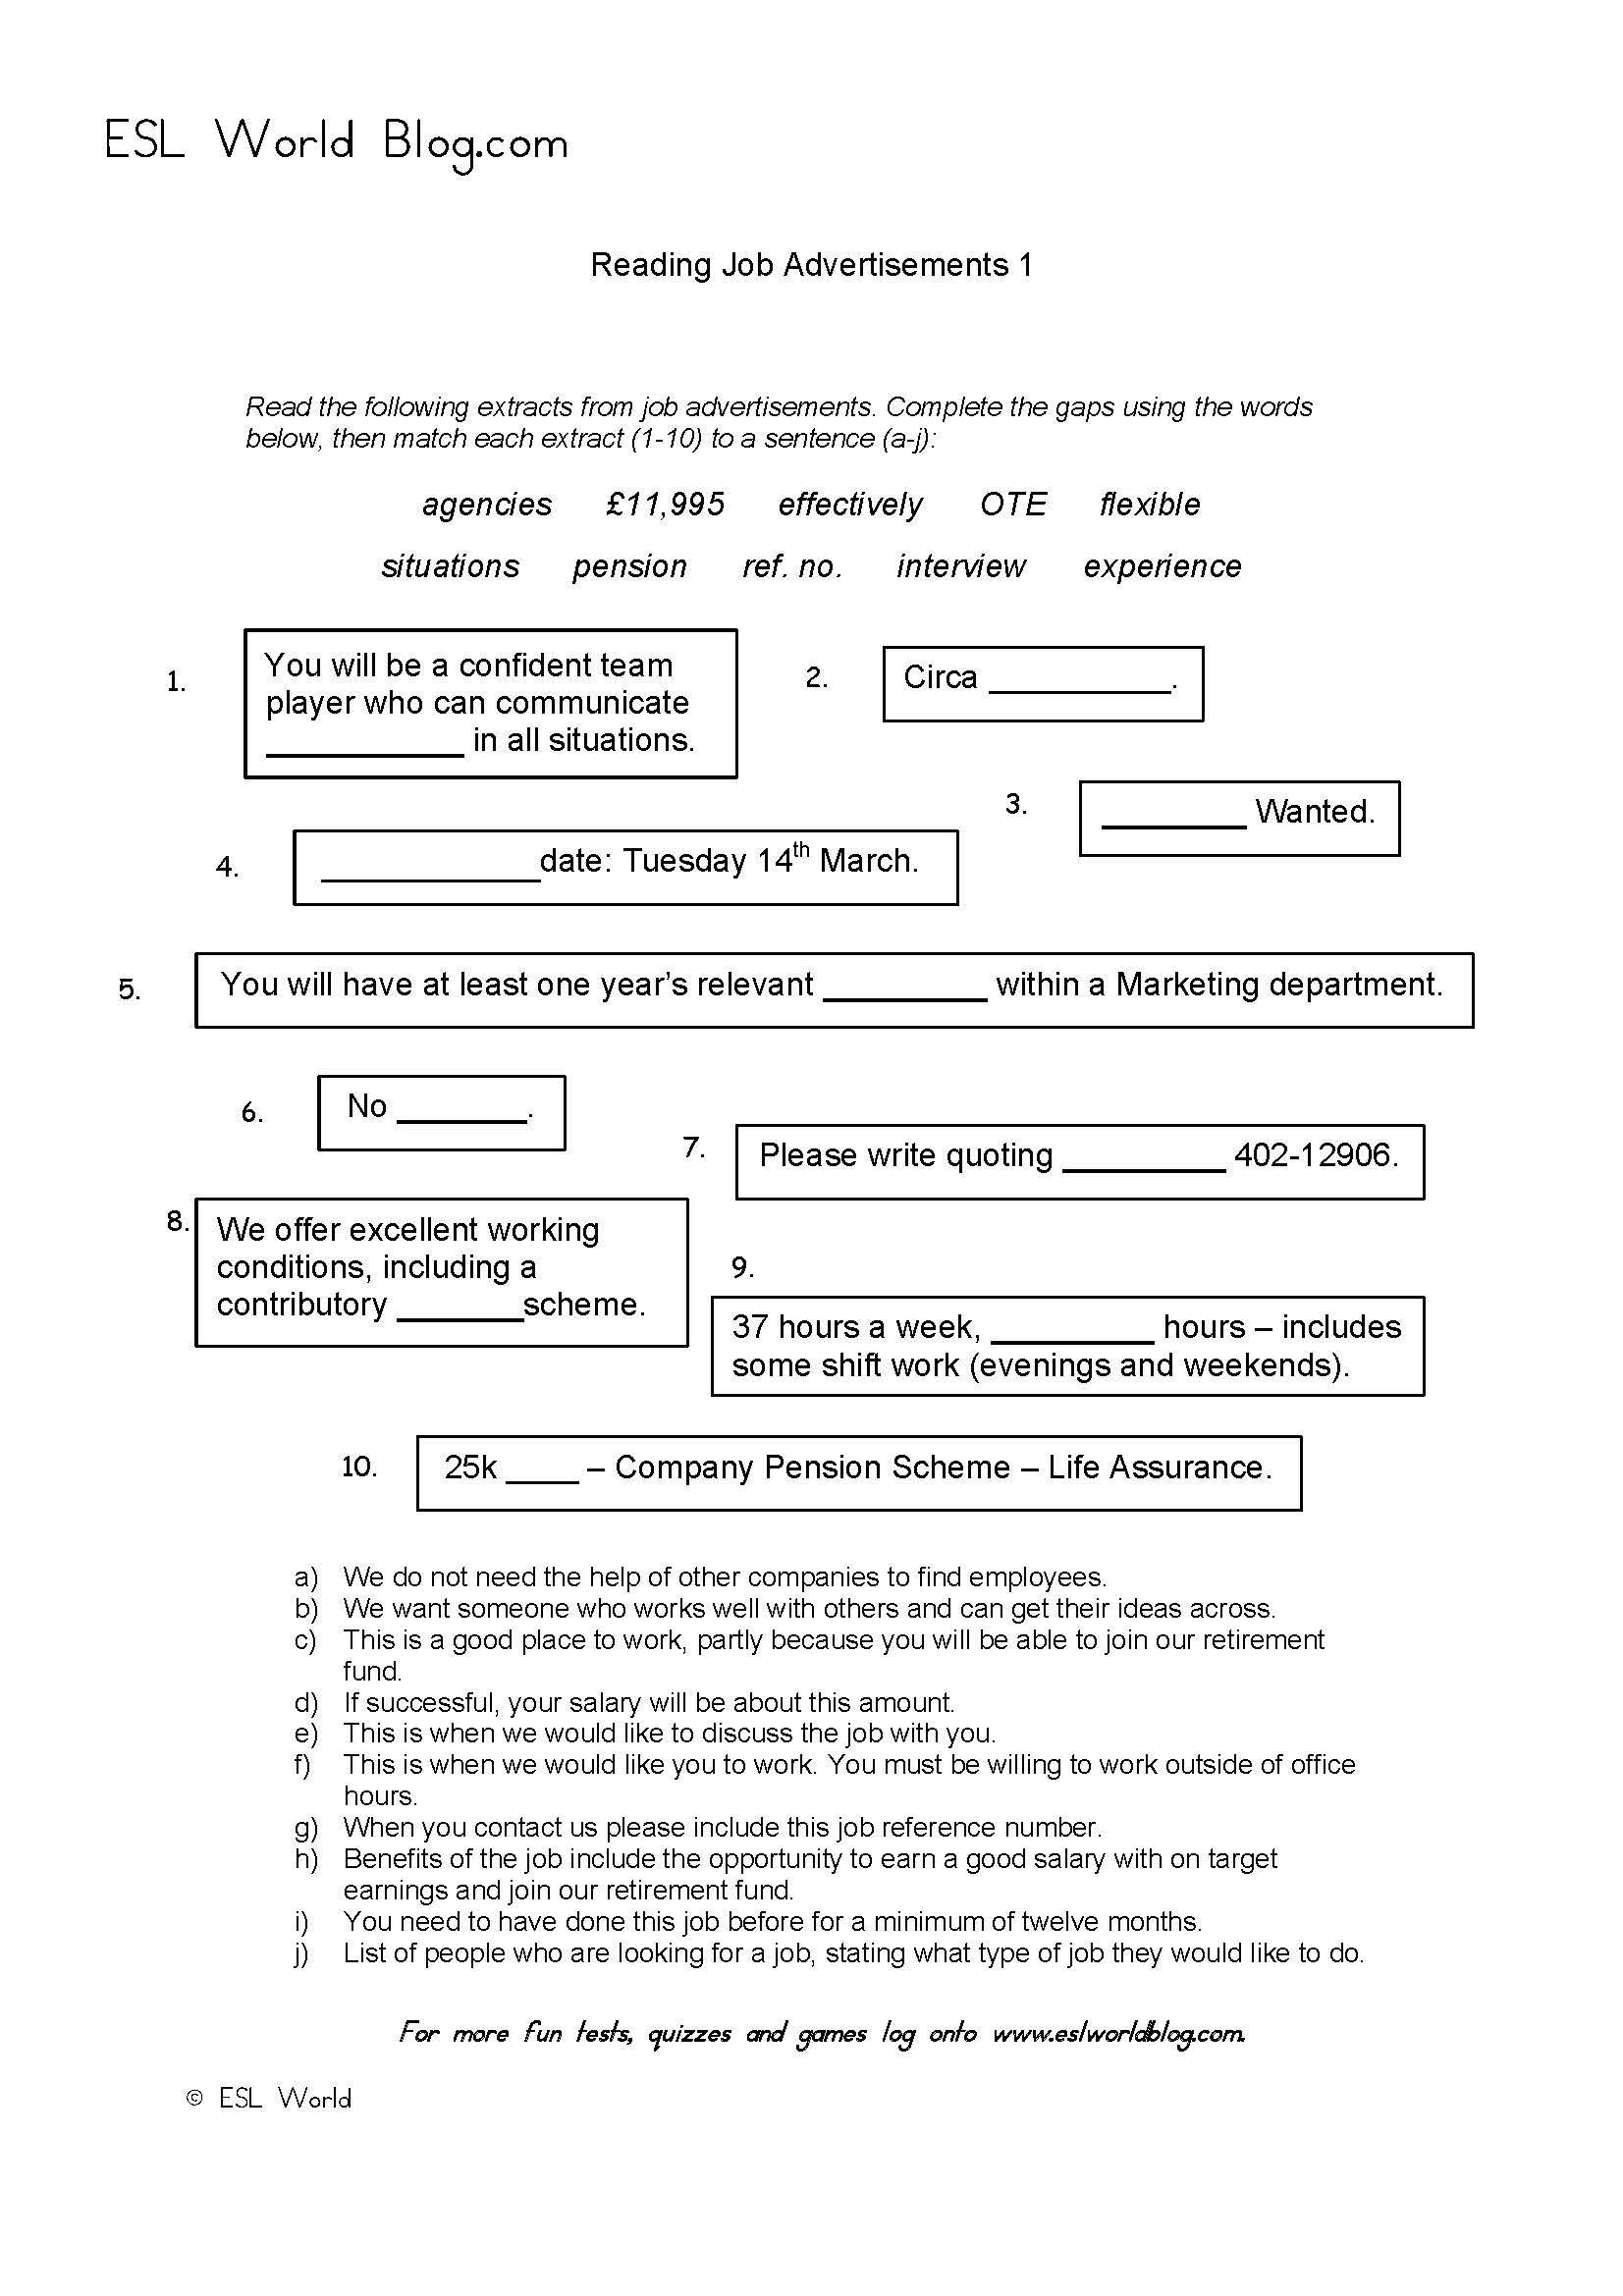 Reading Job Advertisements Activity Sheets A Quick Printable Esl Activity To Help Learners Read